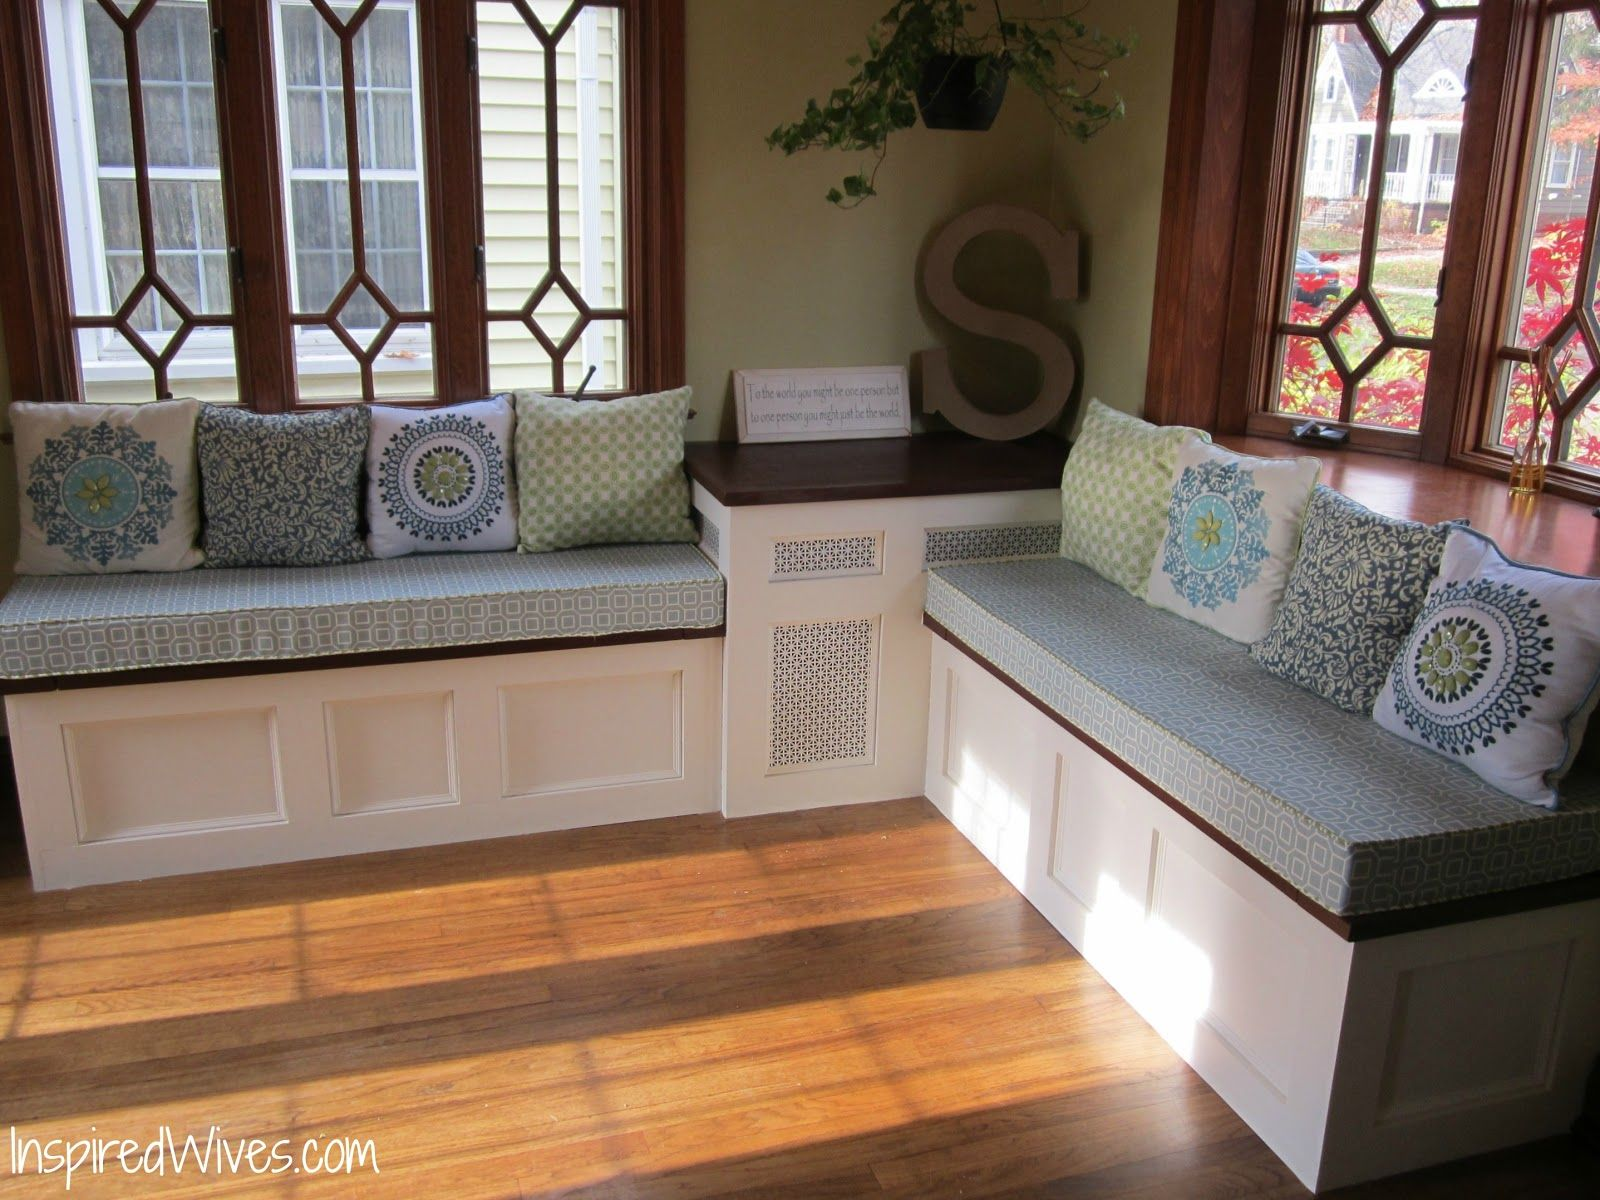 Diy Plans Nook Storage Bench Ehow For Storage Bench Entrance